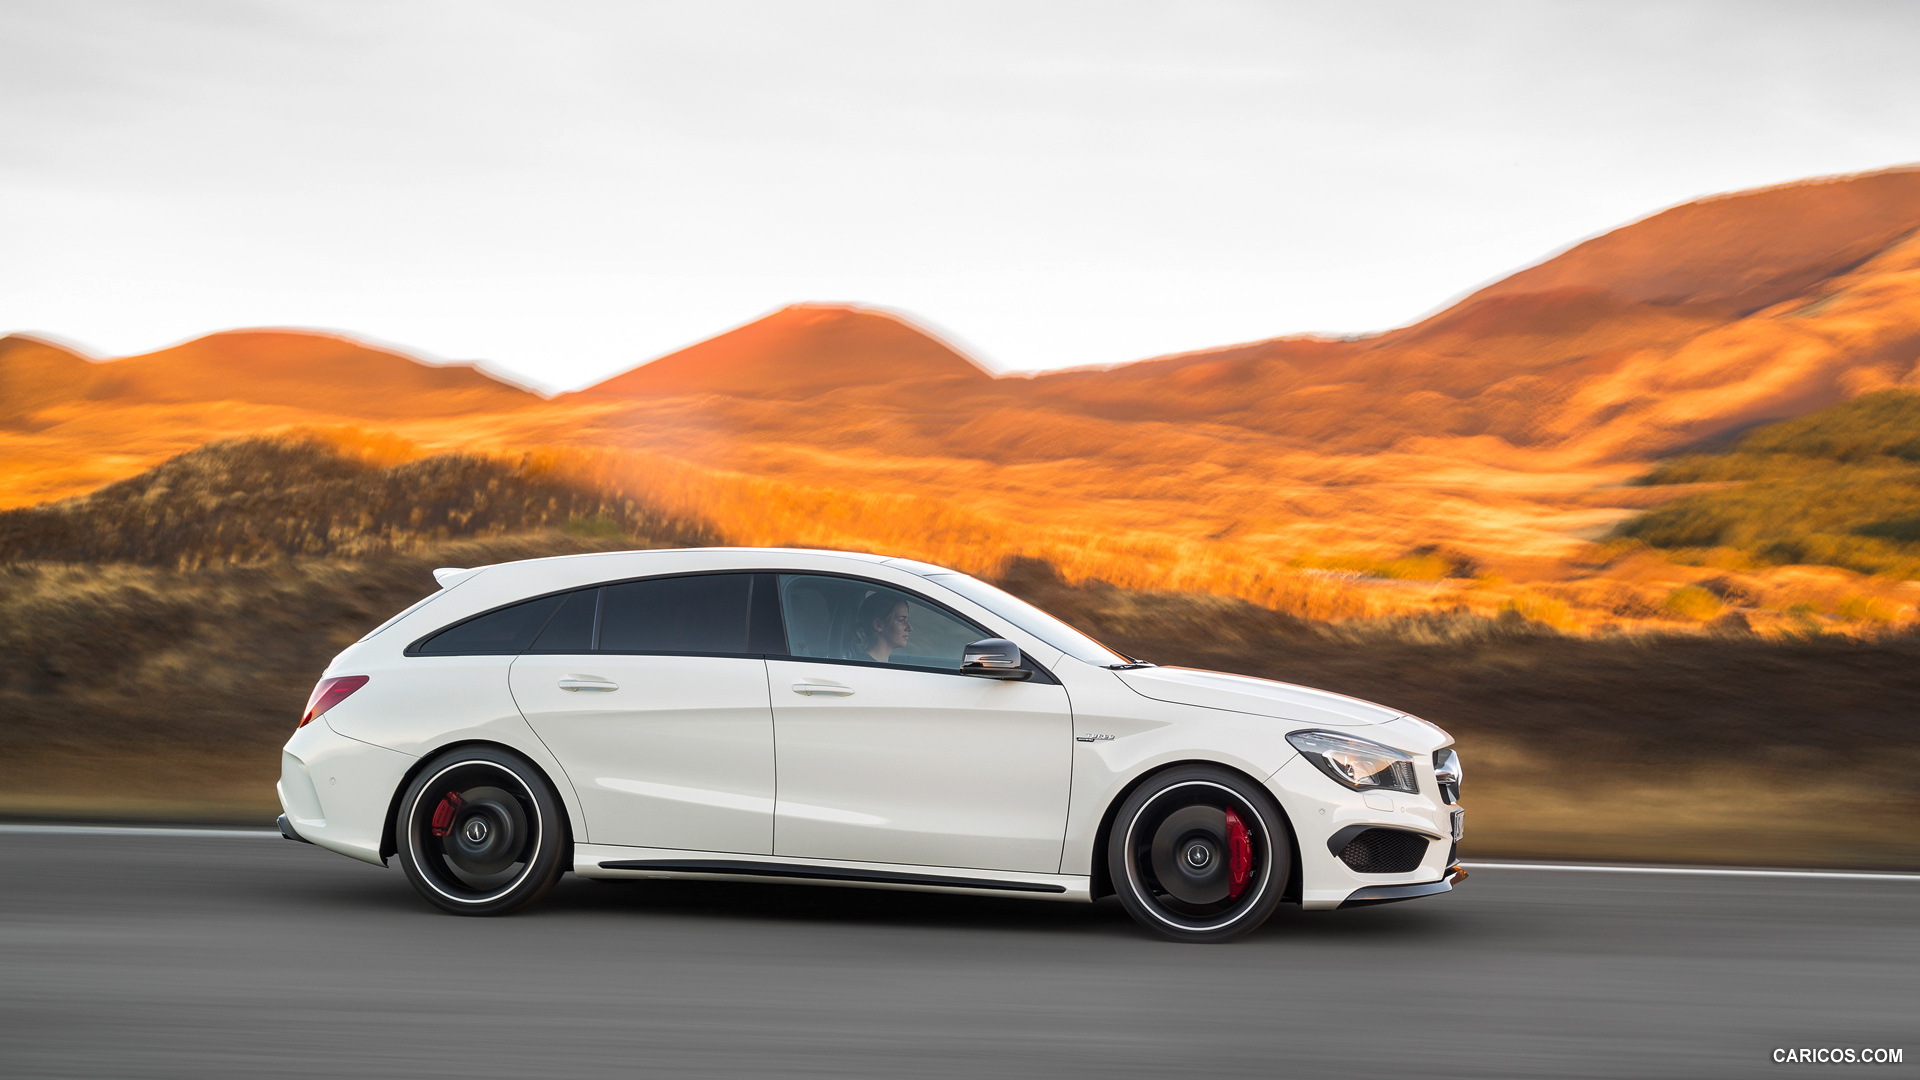 2015 Mercedes Benz CLA 45 AMG Shooting Brake Calcite White 1920x1080